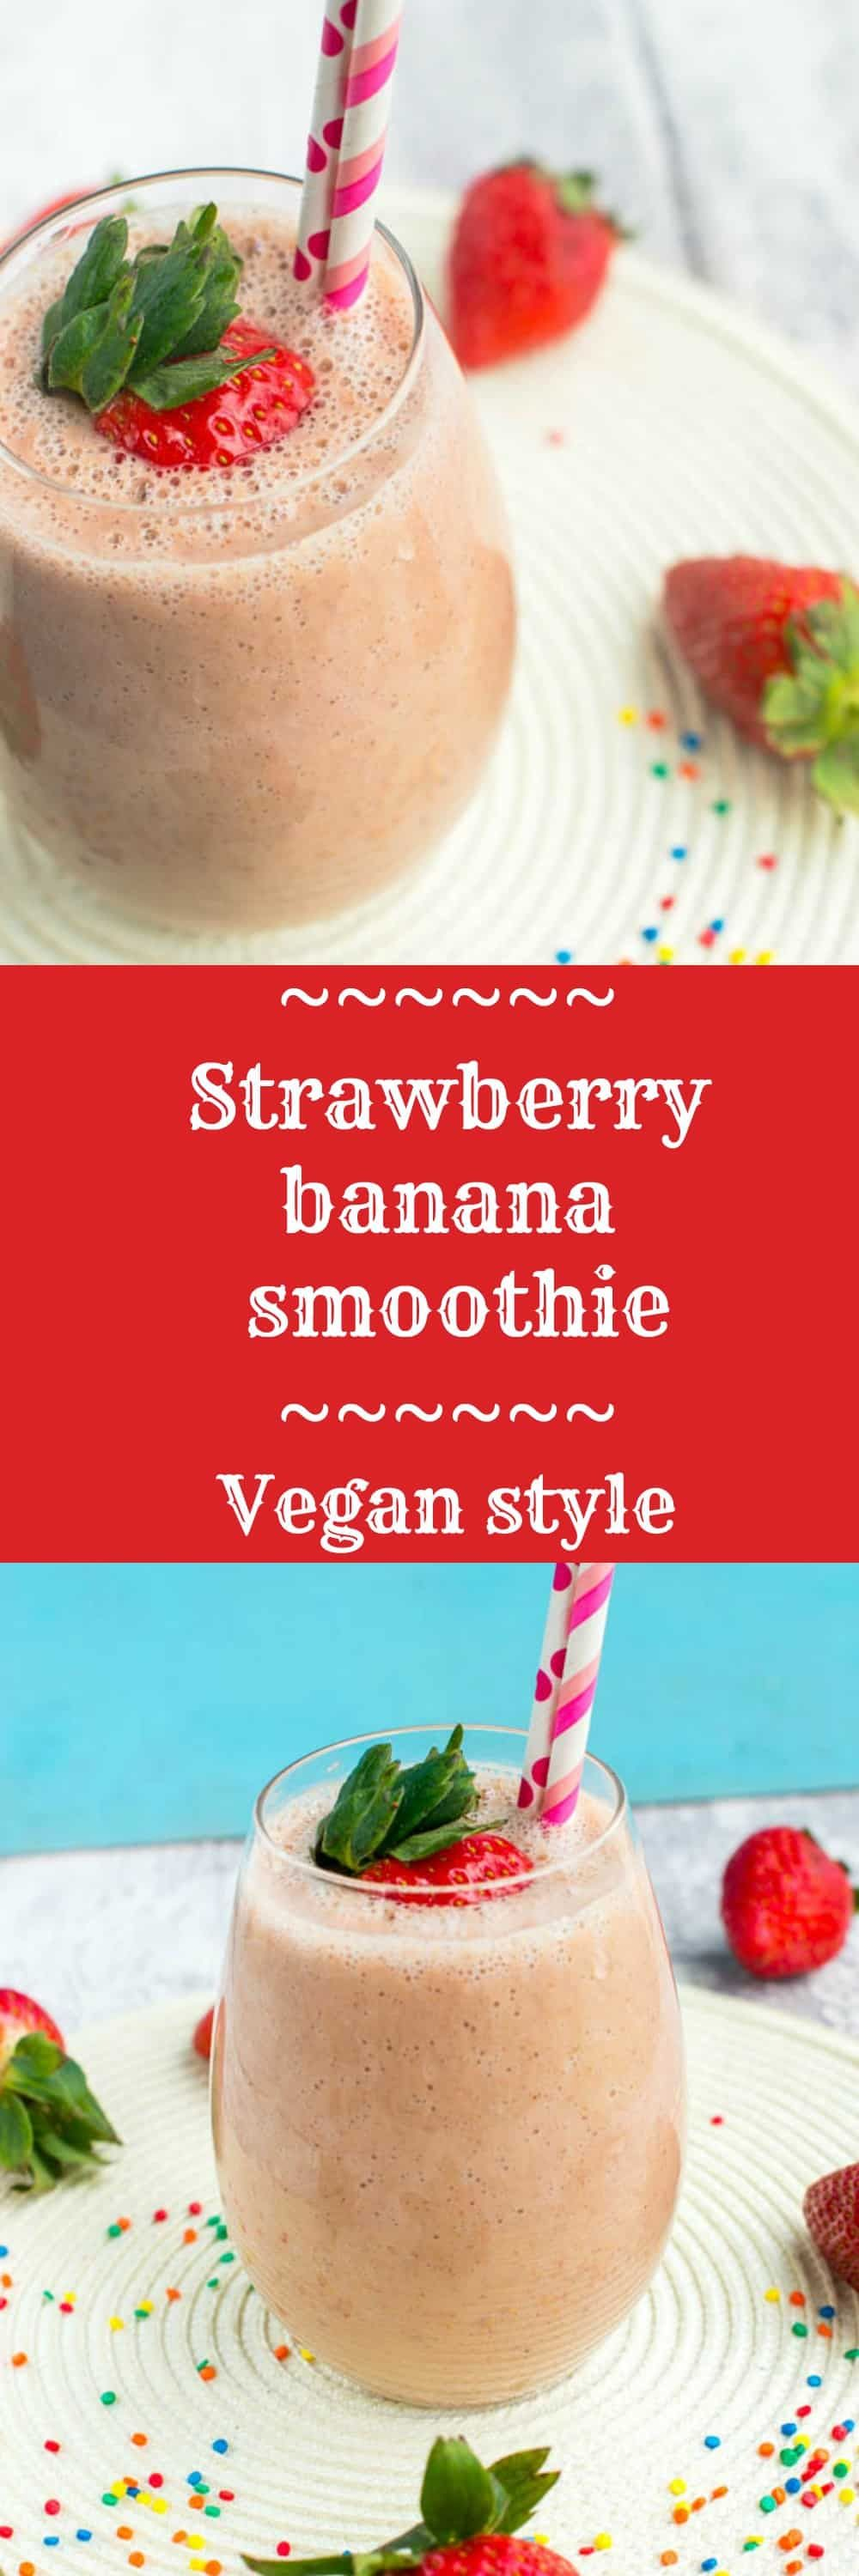 Strawberry and banana smoothie (vegan) #strawberrybananasmoothie